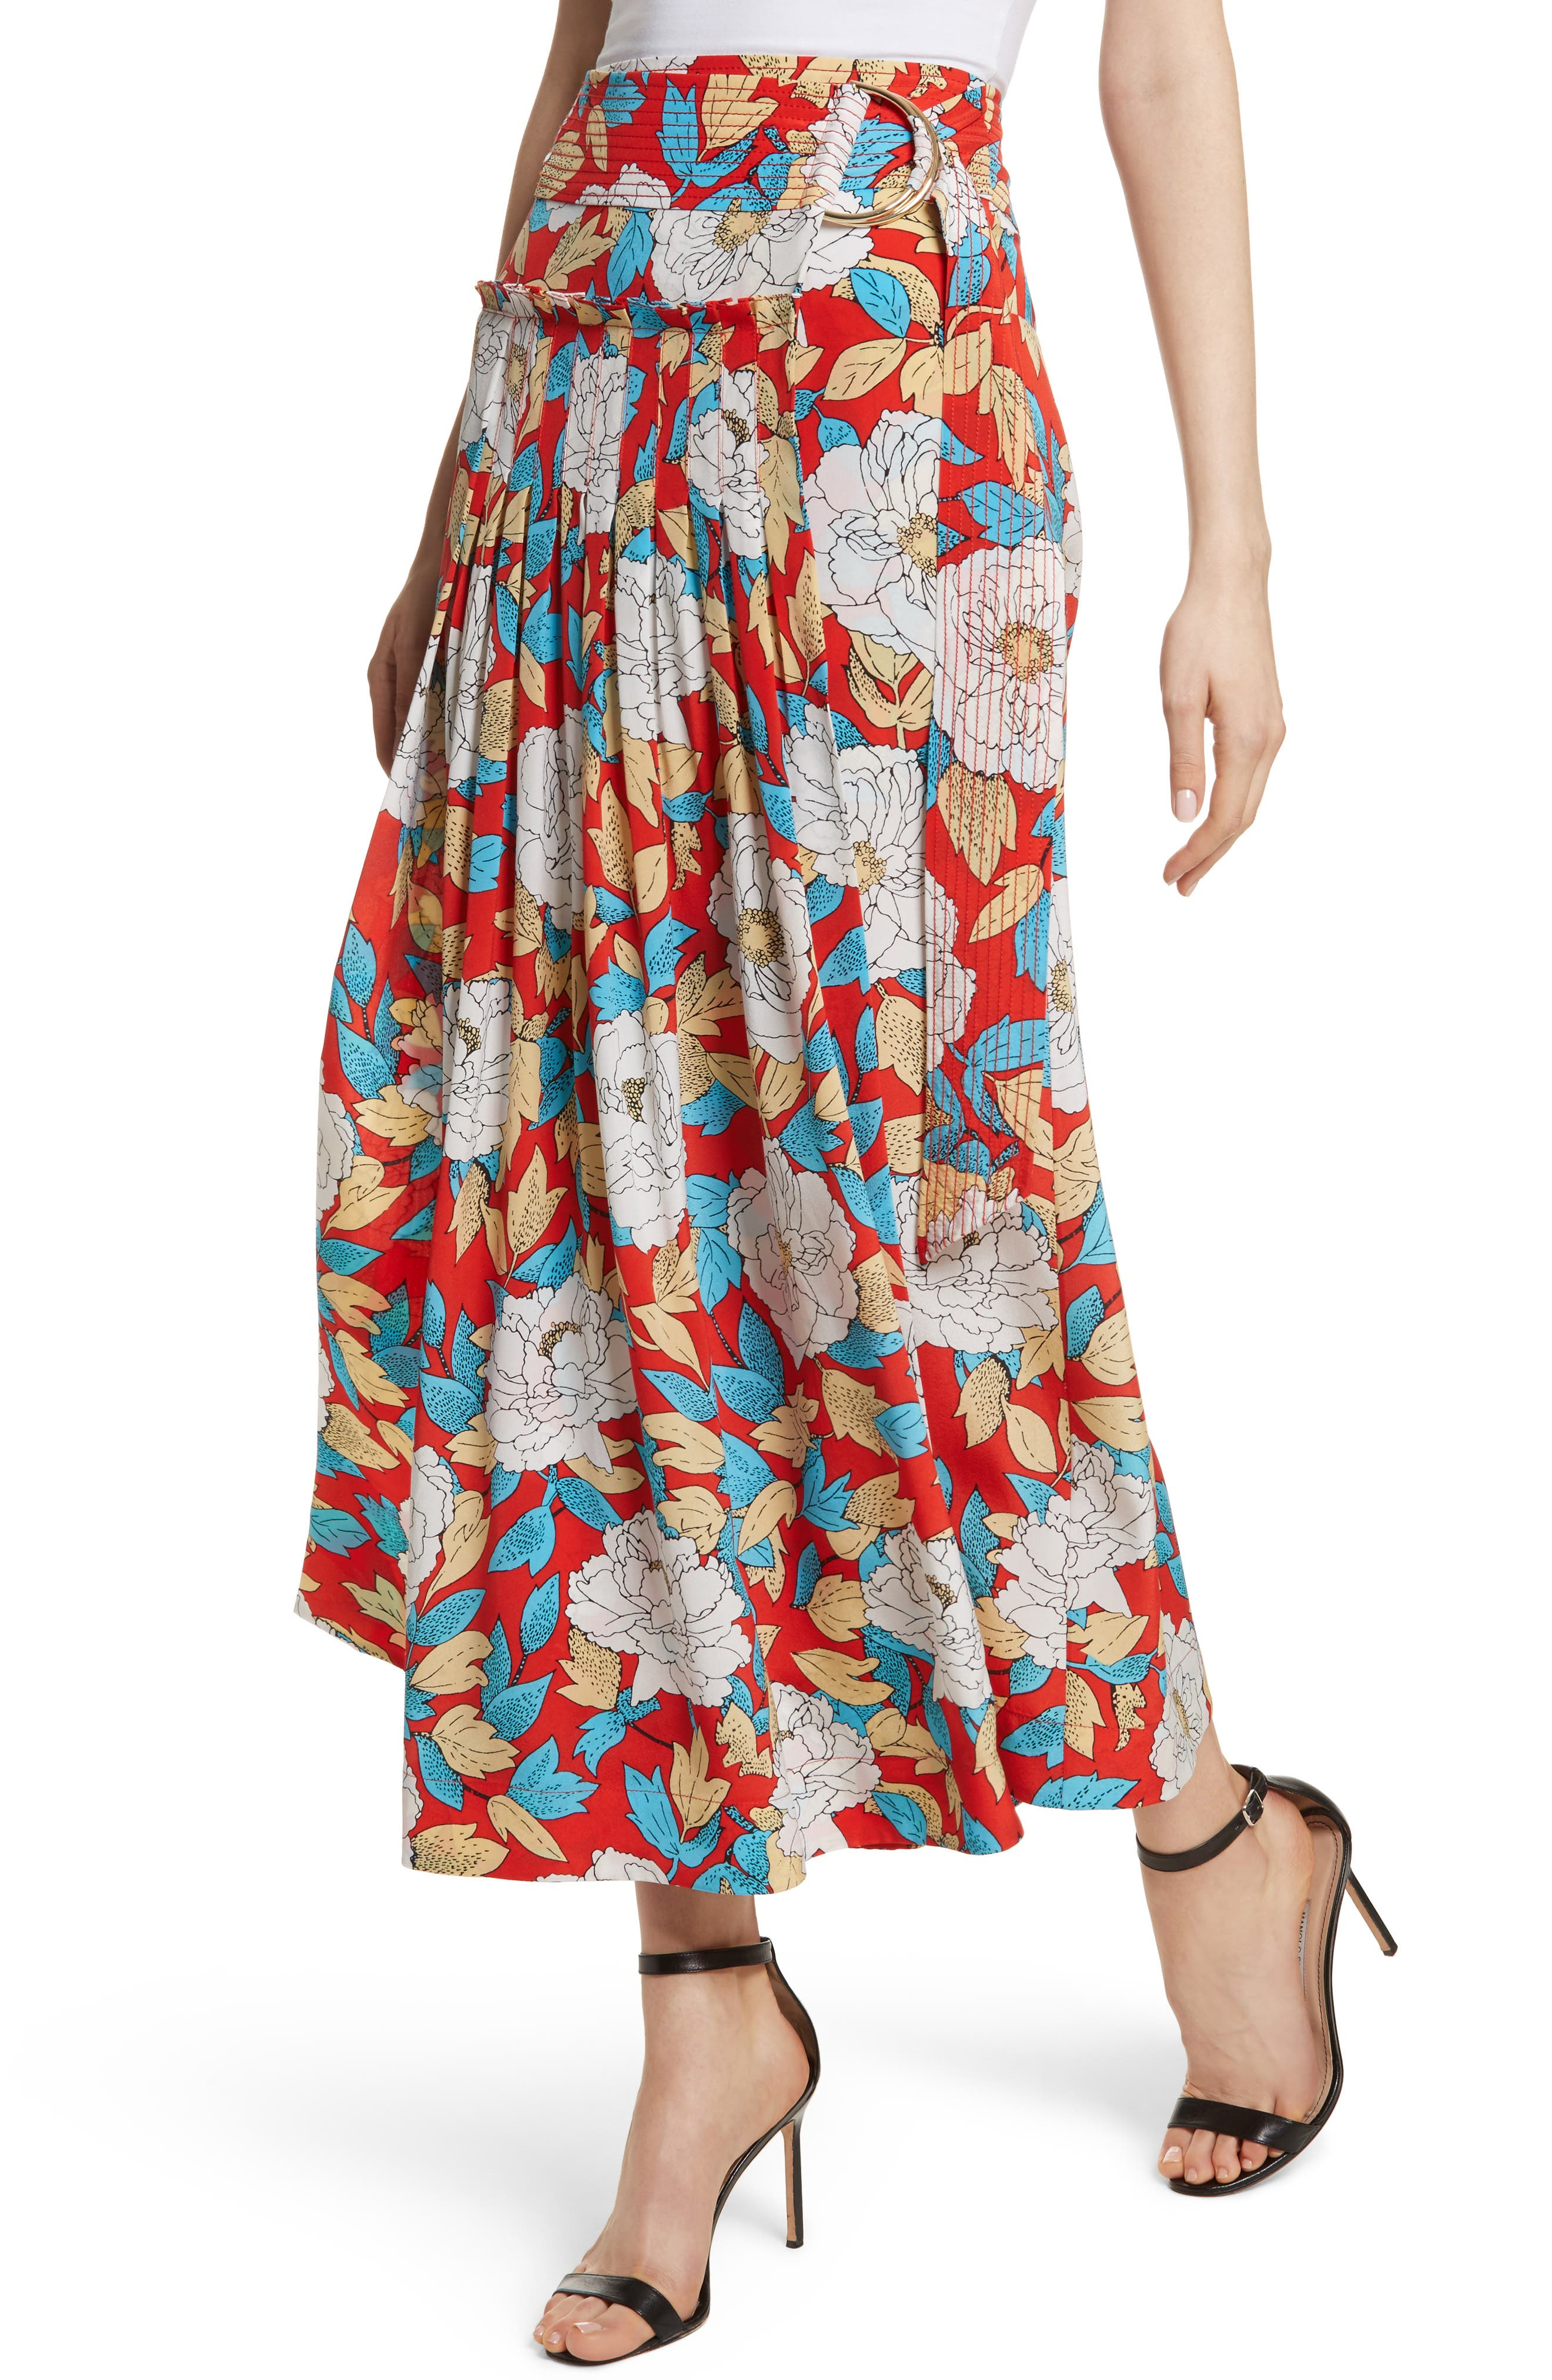 Diane von Furstenberg Floral Silk Midi Skirt,                             Alternate thumbnail 4, color,                             600